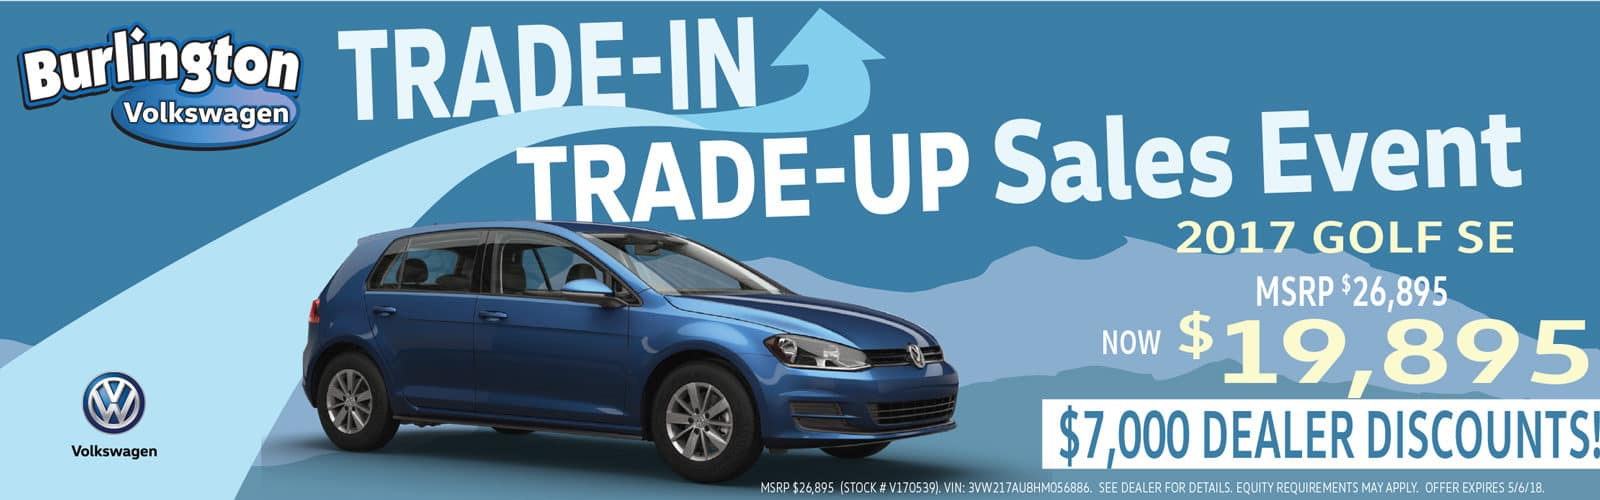 Burlington Volkswagen New And Used Volkswagen Dealer In Nj